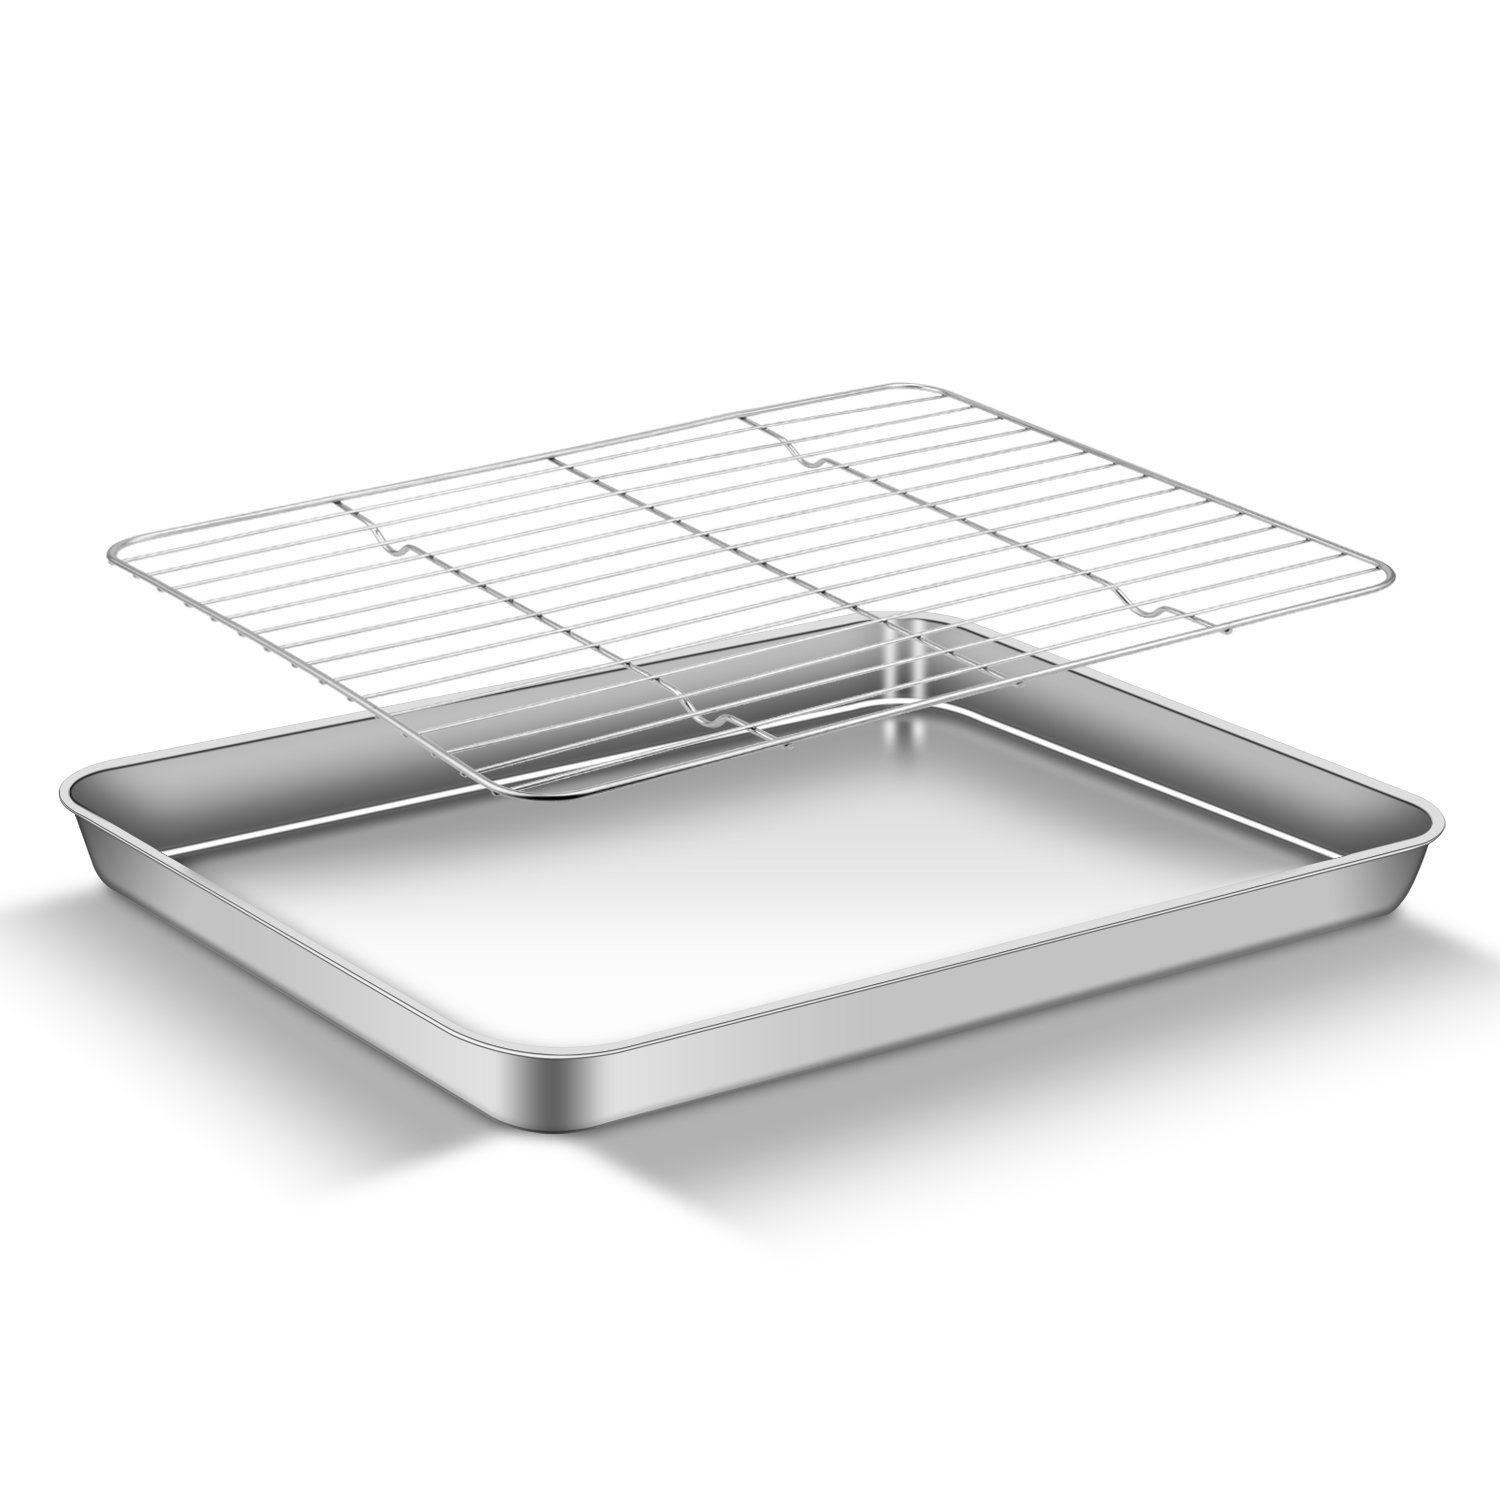 AEMIAO Baking Sheet with Rack Set, Stainless Steel Baking Sheet Pan Cooling Rack Professional Wire Mesh Cake Cooling Rack, Healthy & Non Toxic, Mirror Polish & Easy Clean - Dishwasher Safe